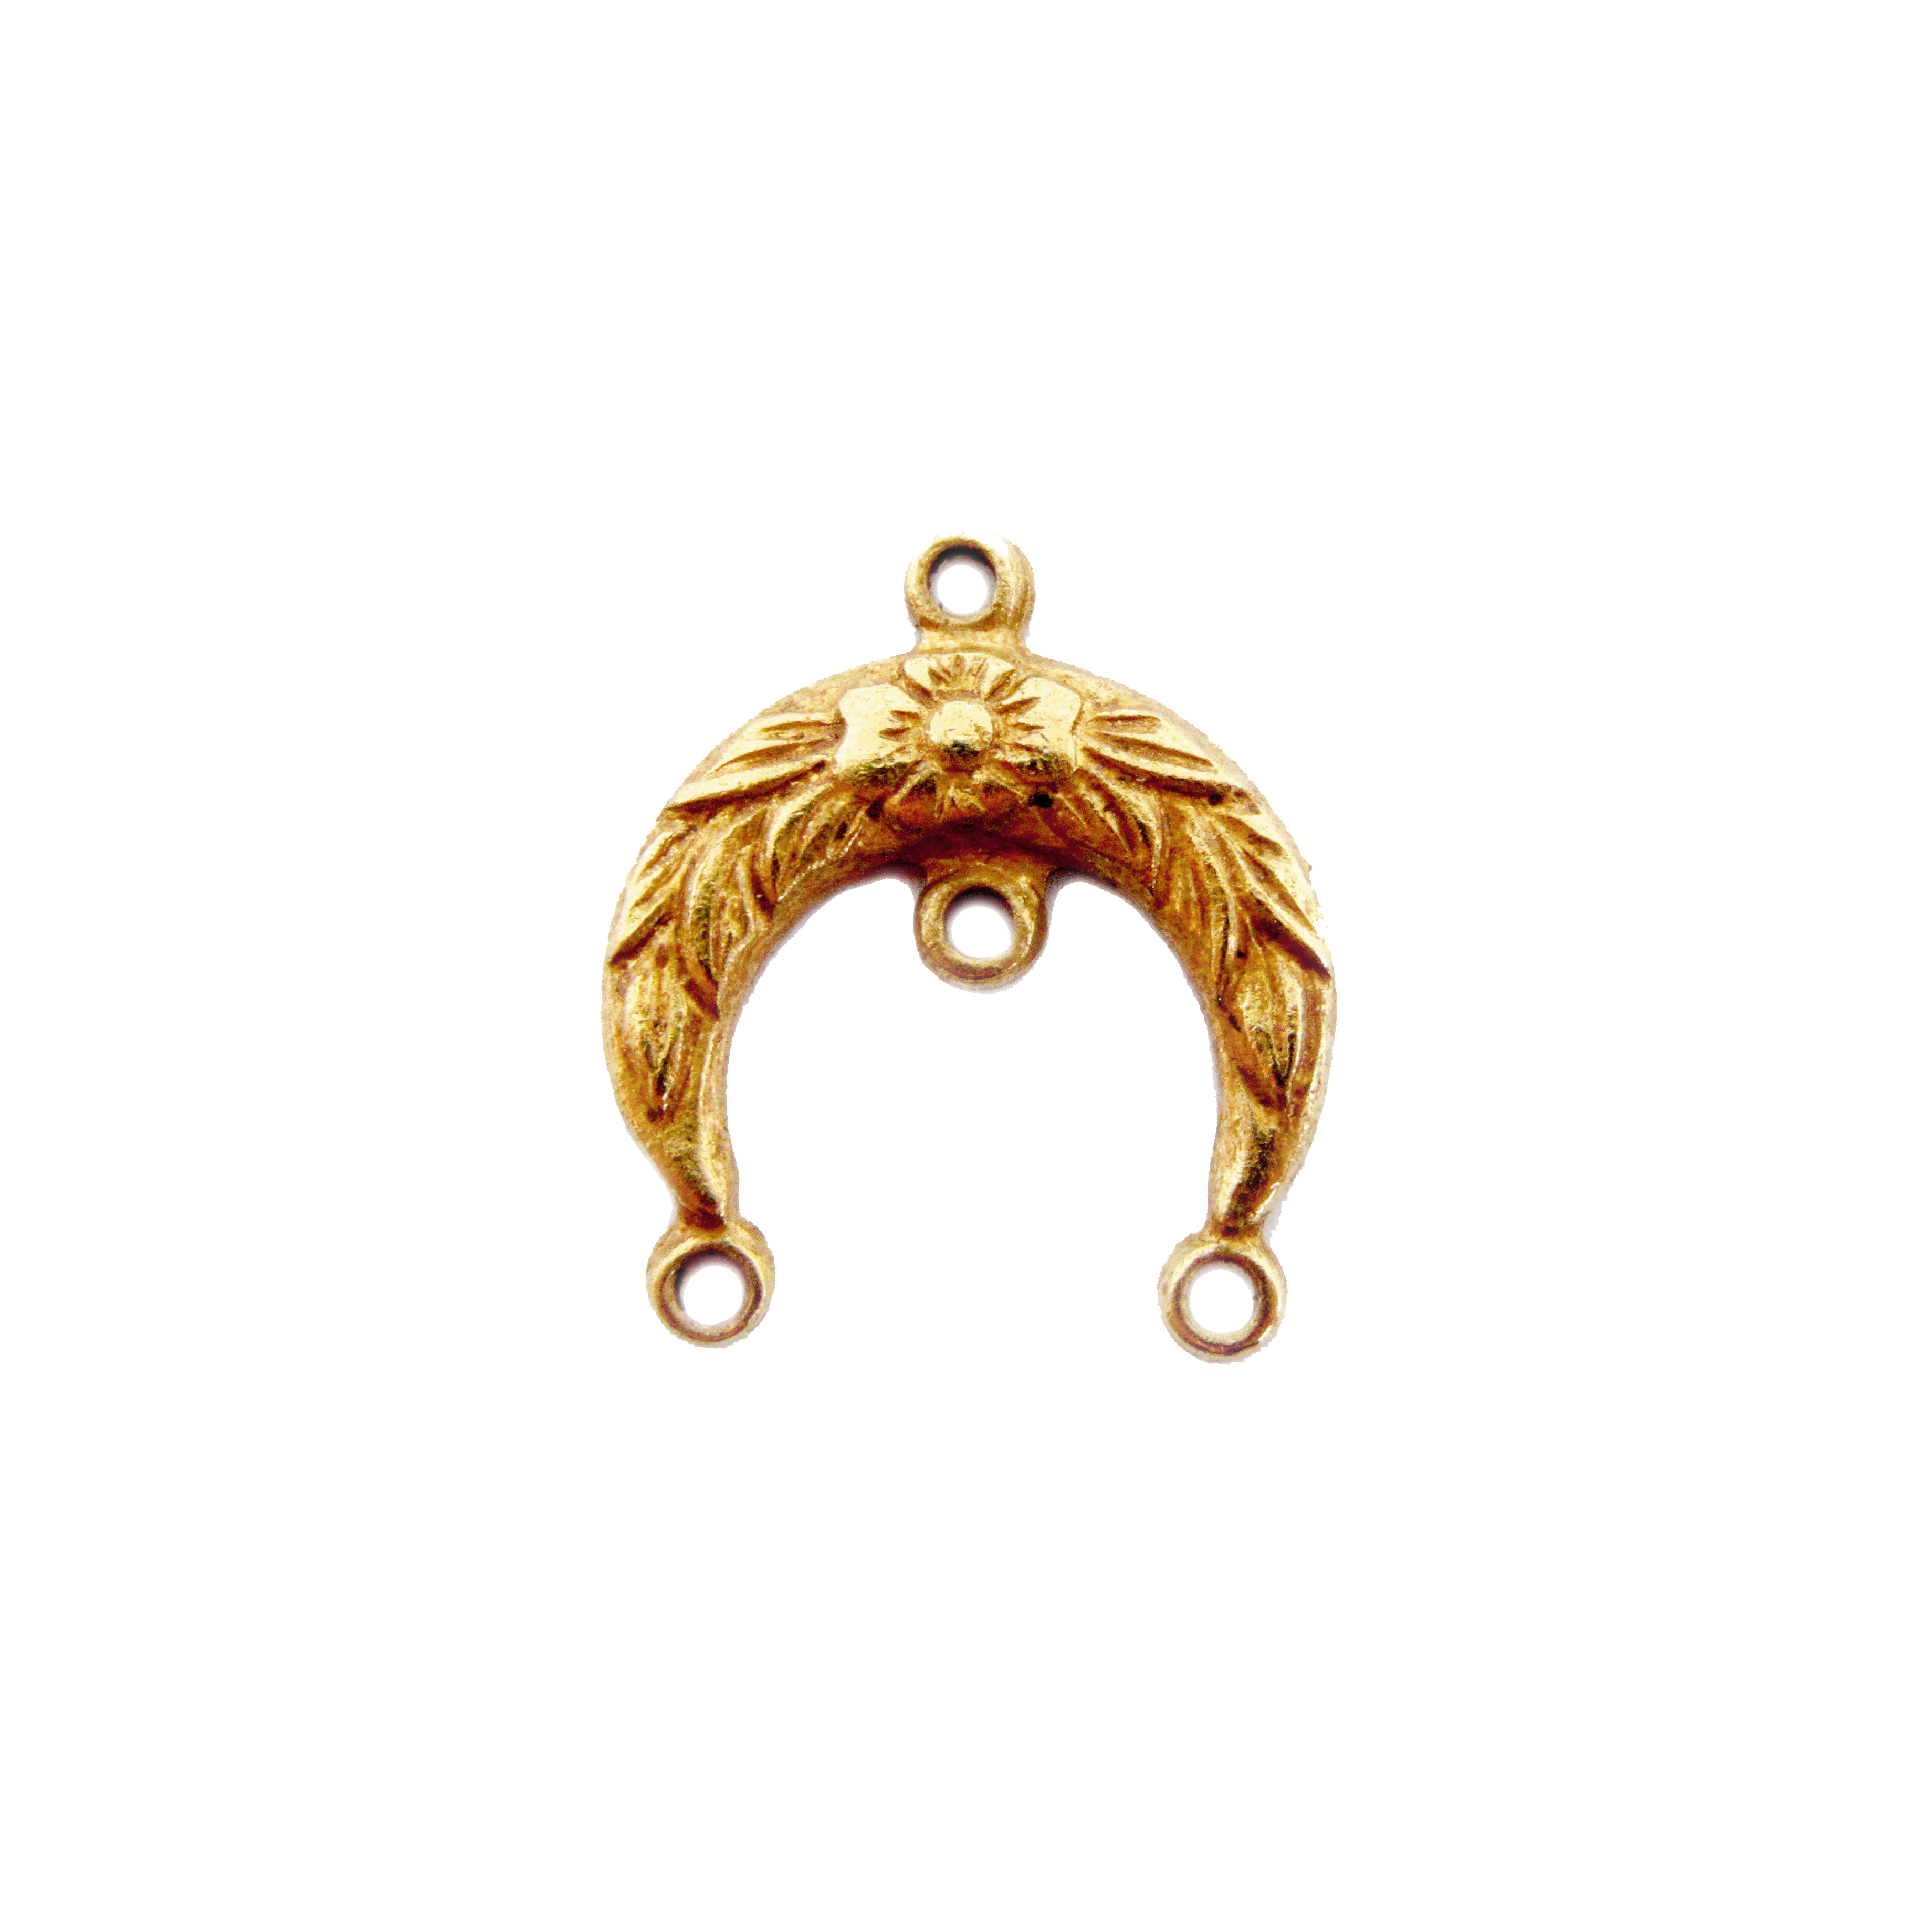 art nouveau swag, connector, pendant, classic gold plated, brass, brass stamping, swag, 16x15mm, gold, crescent, gold plated, pendant connector, centerpiece, us made, nickel free, B'sue Boutiques, vintage supplies, jewelry supplies, jewelry making, 04984